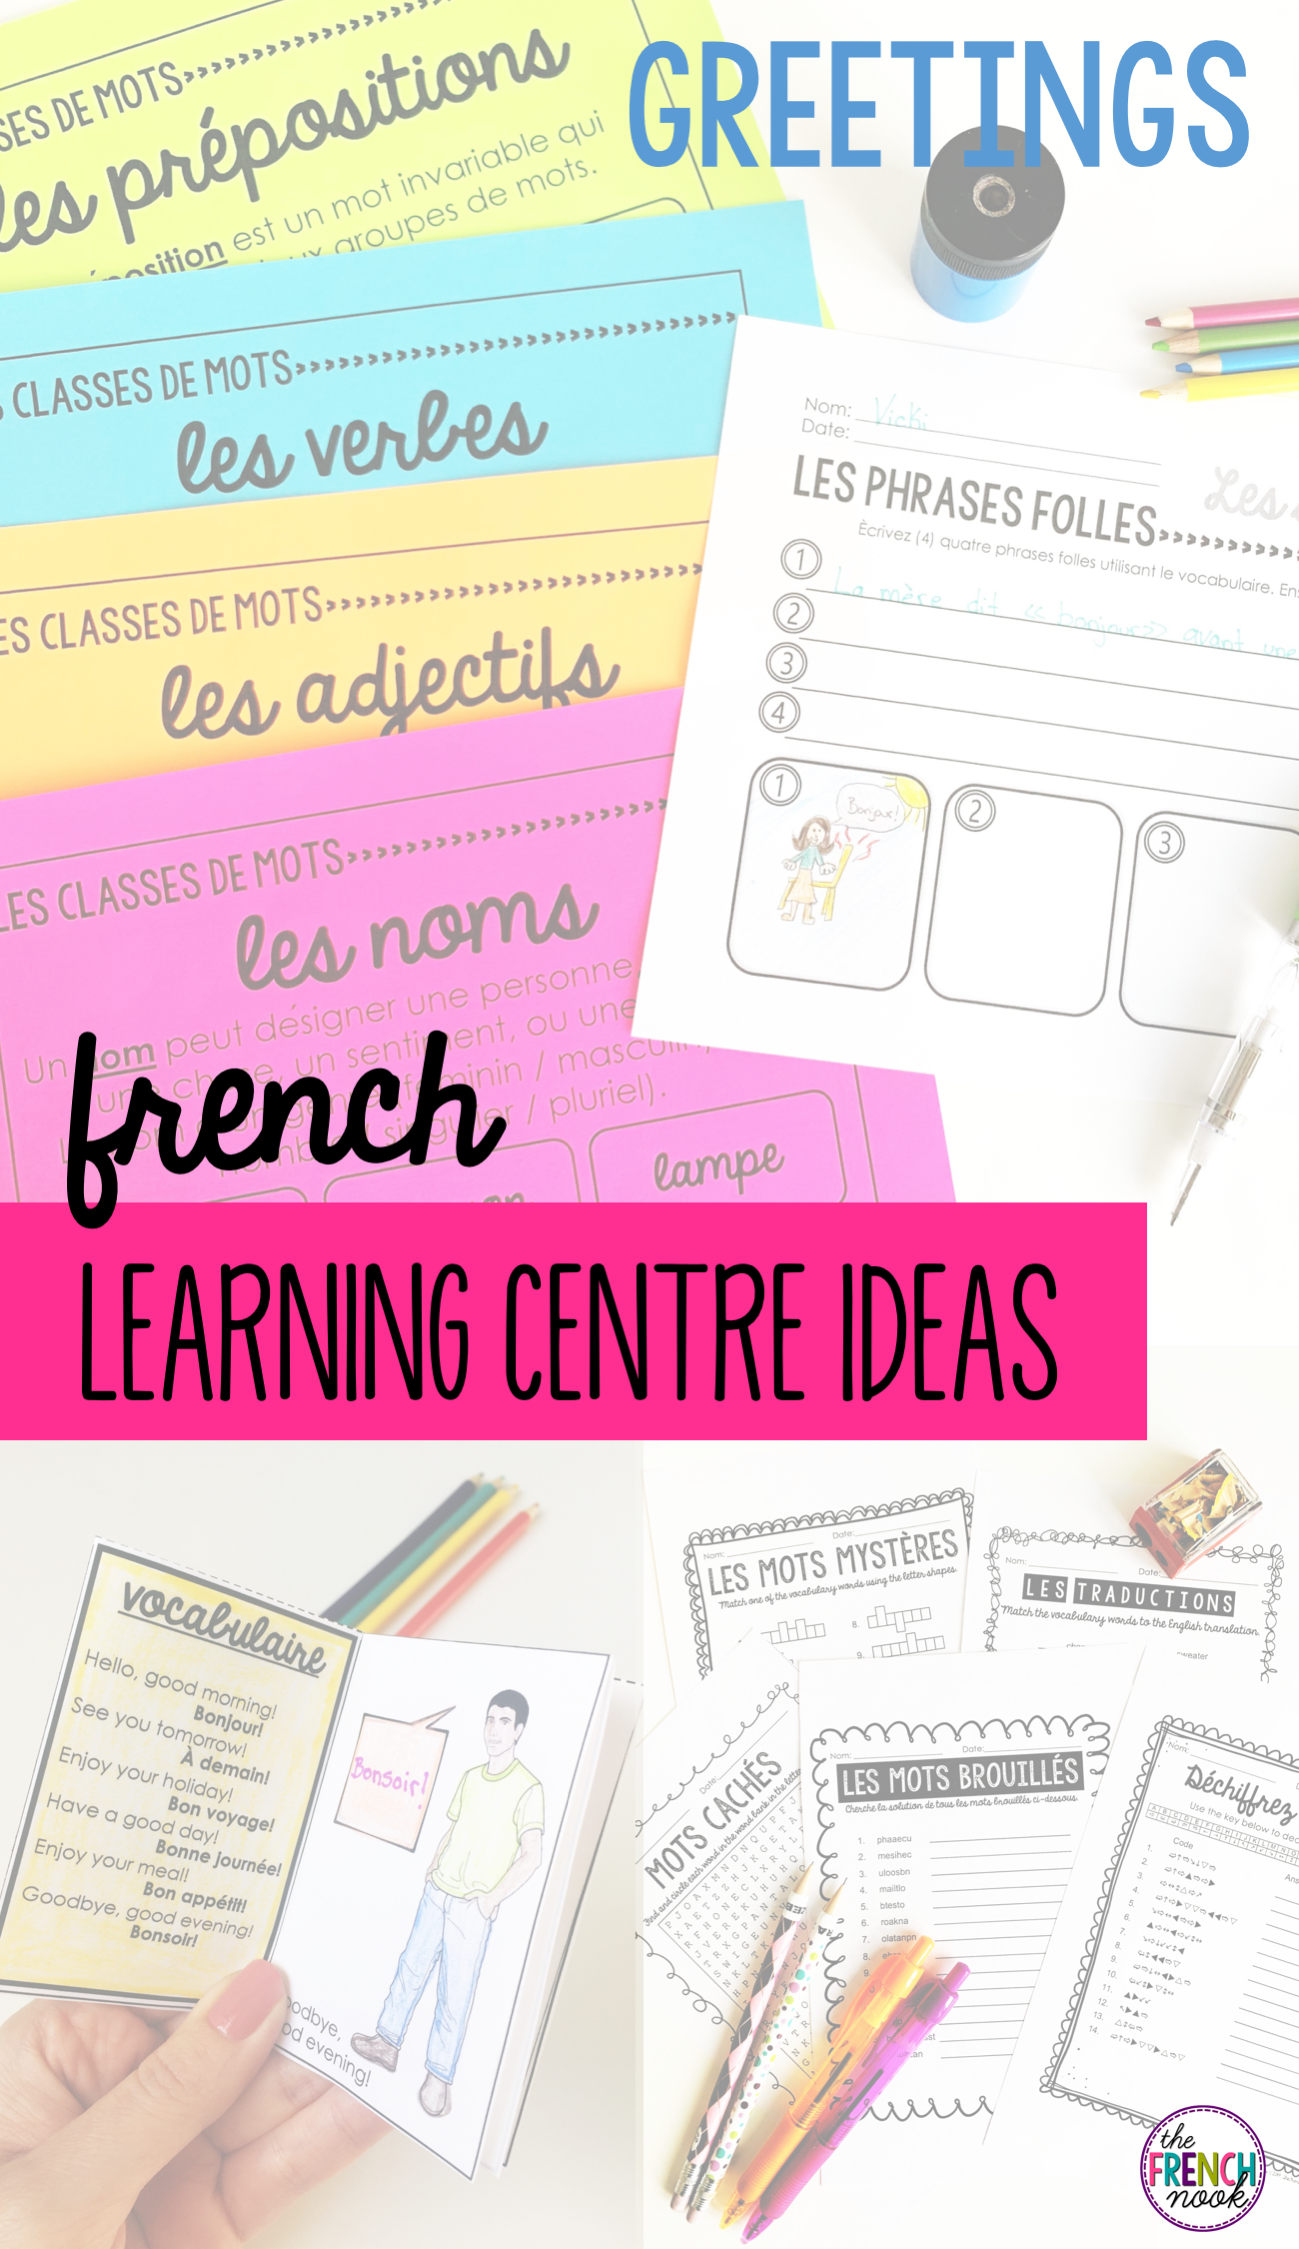 French Greetings Learning Centre Ideas In